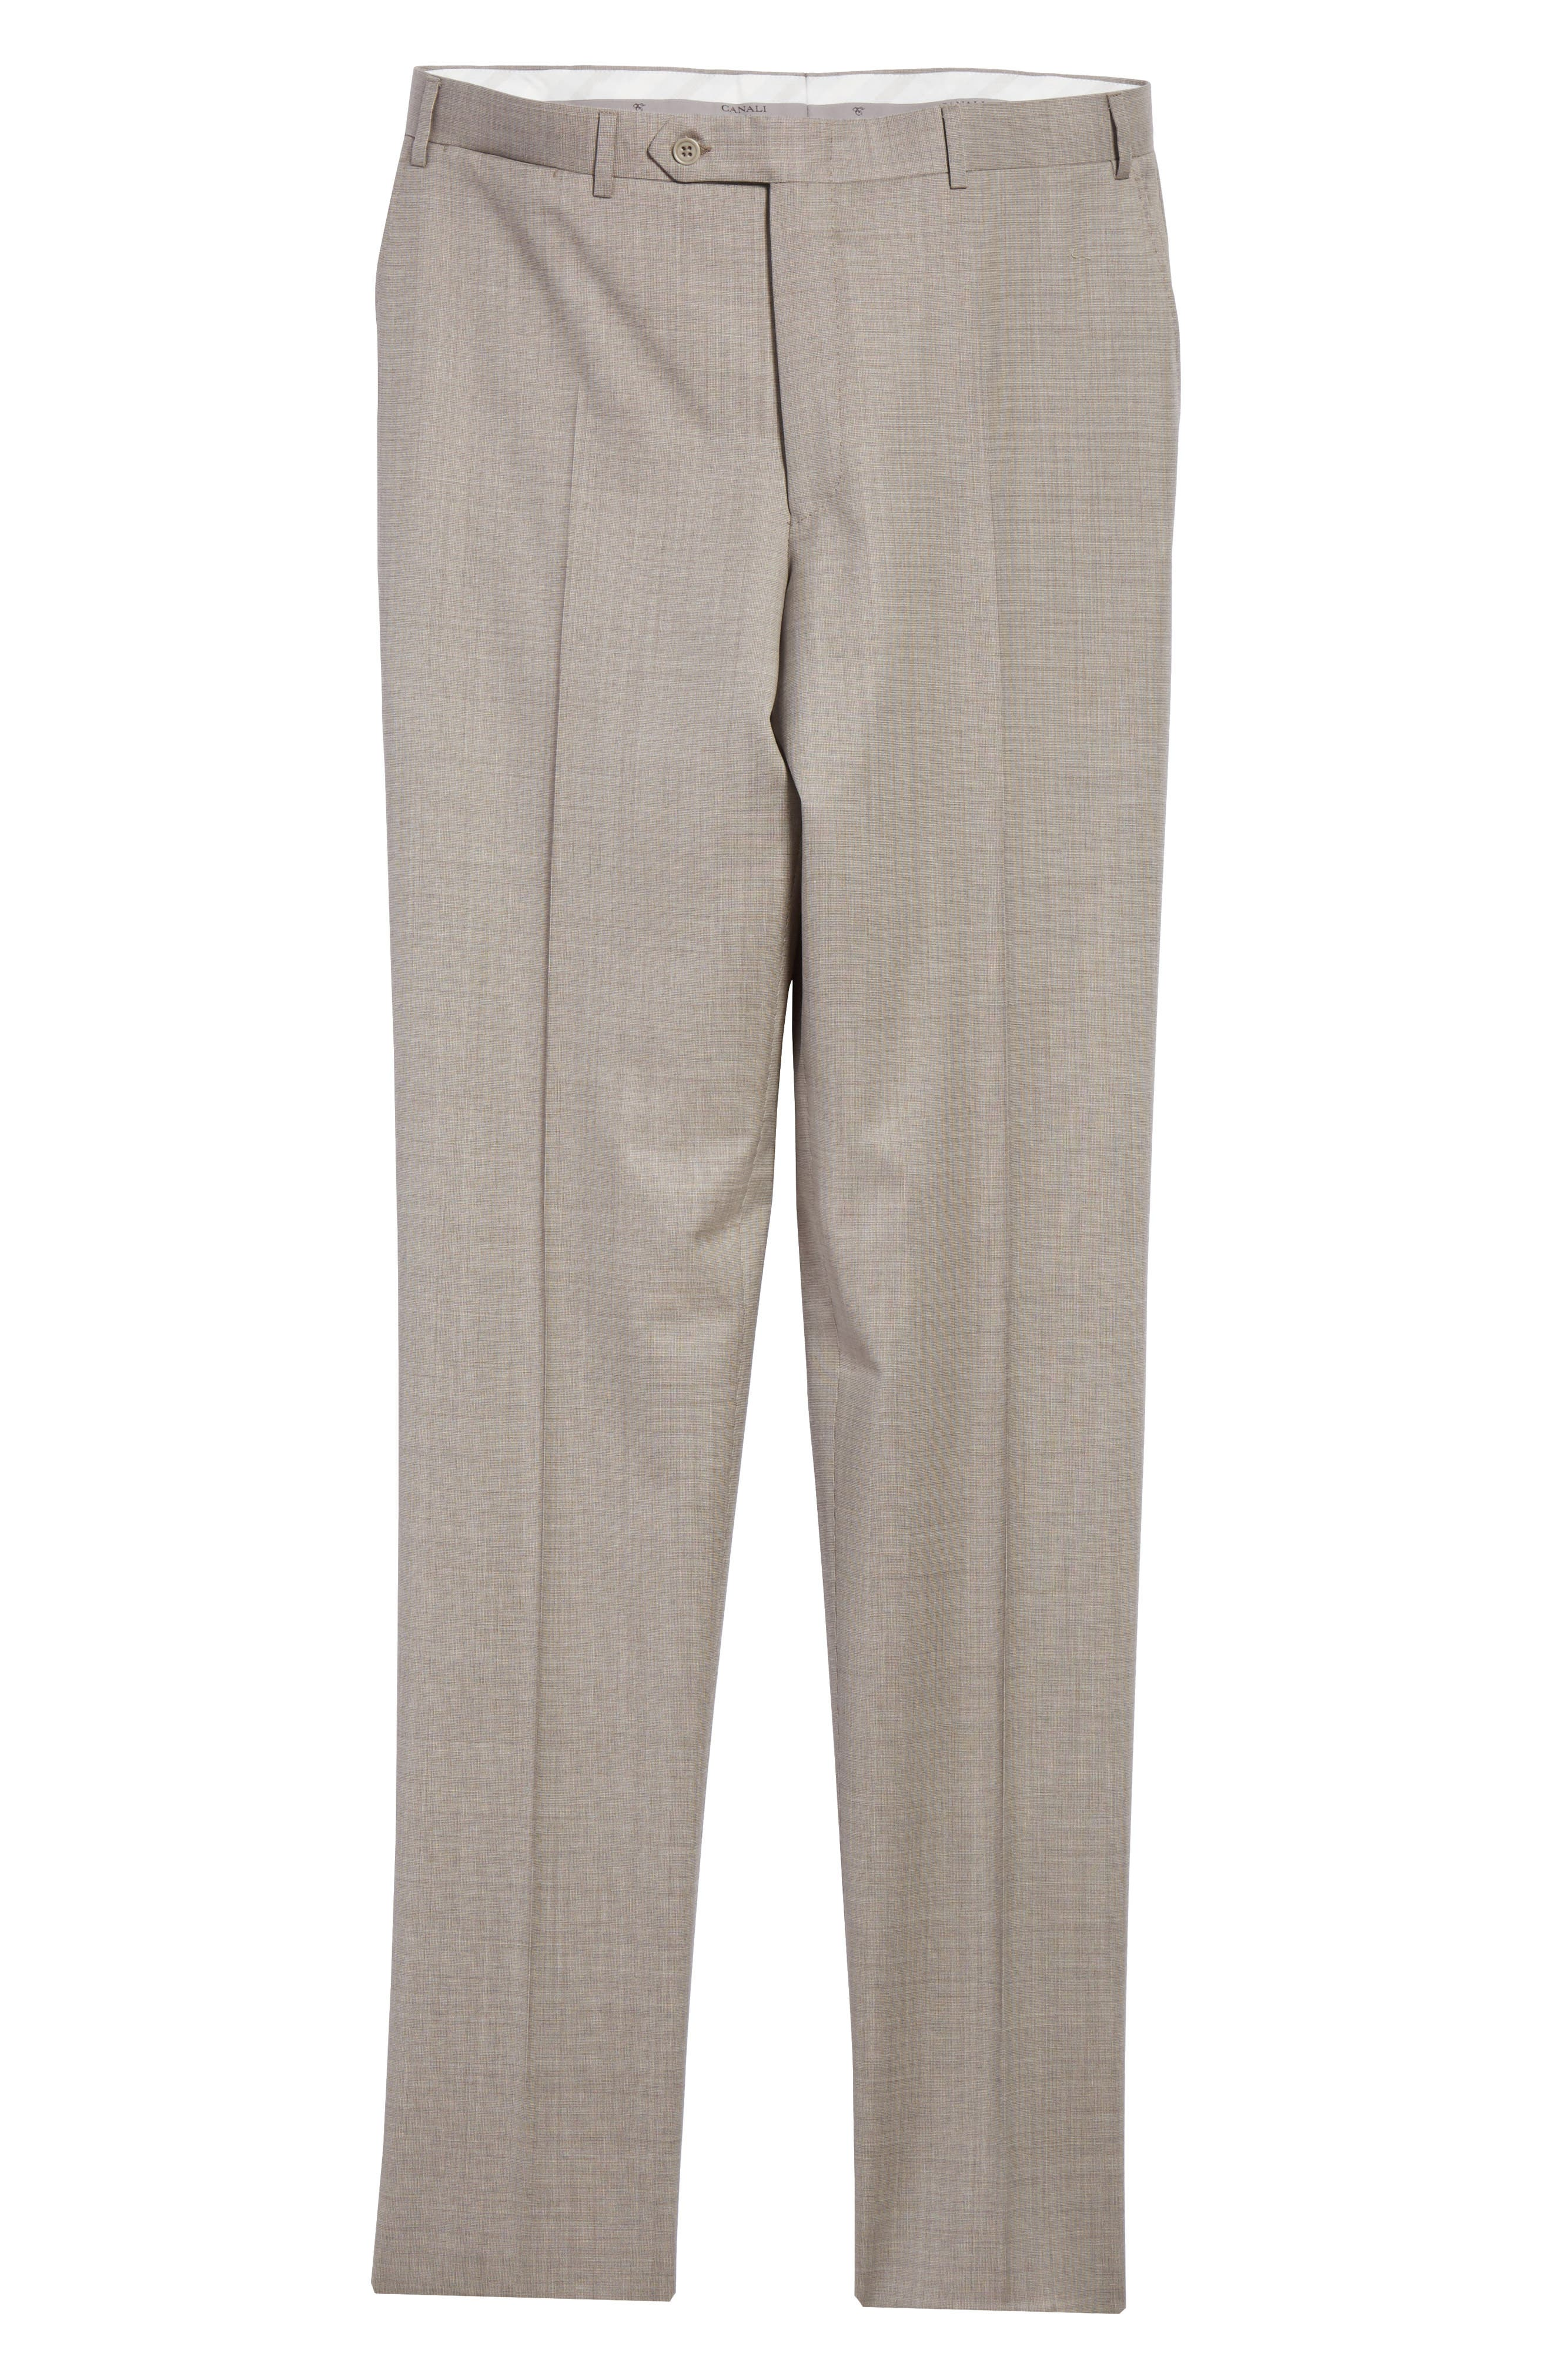 Flat Front Solid Wool Trousers,                             Alternate thumbnail 6, color,                             Tan